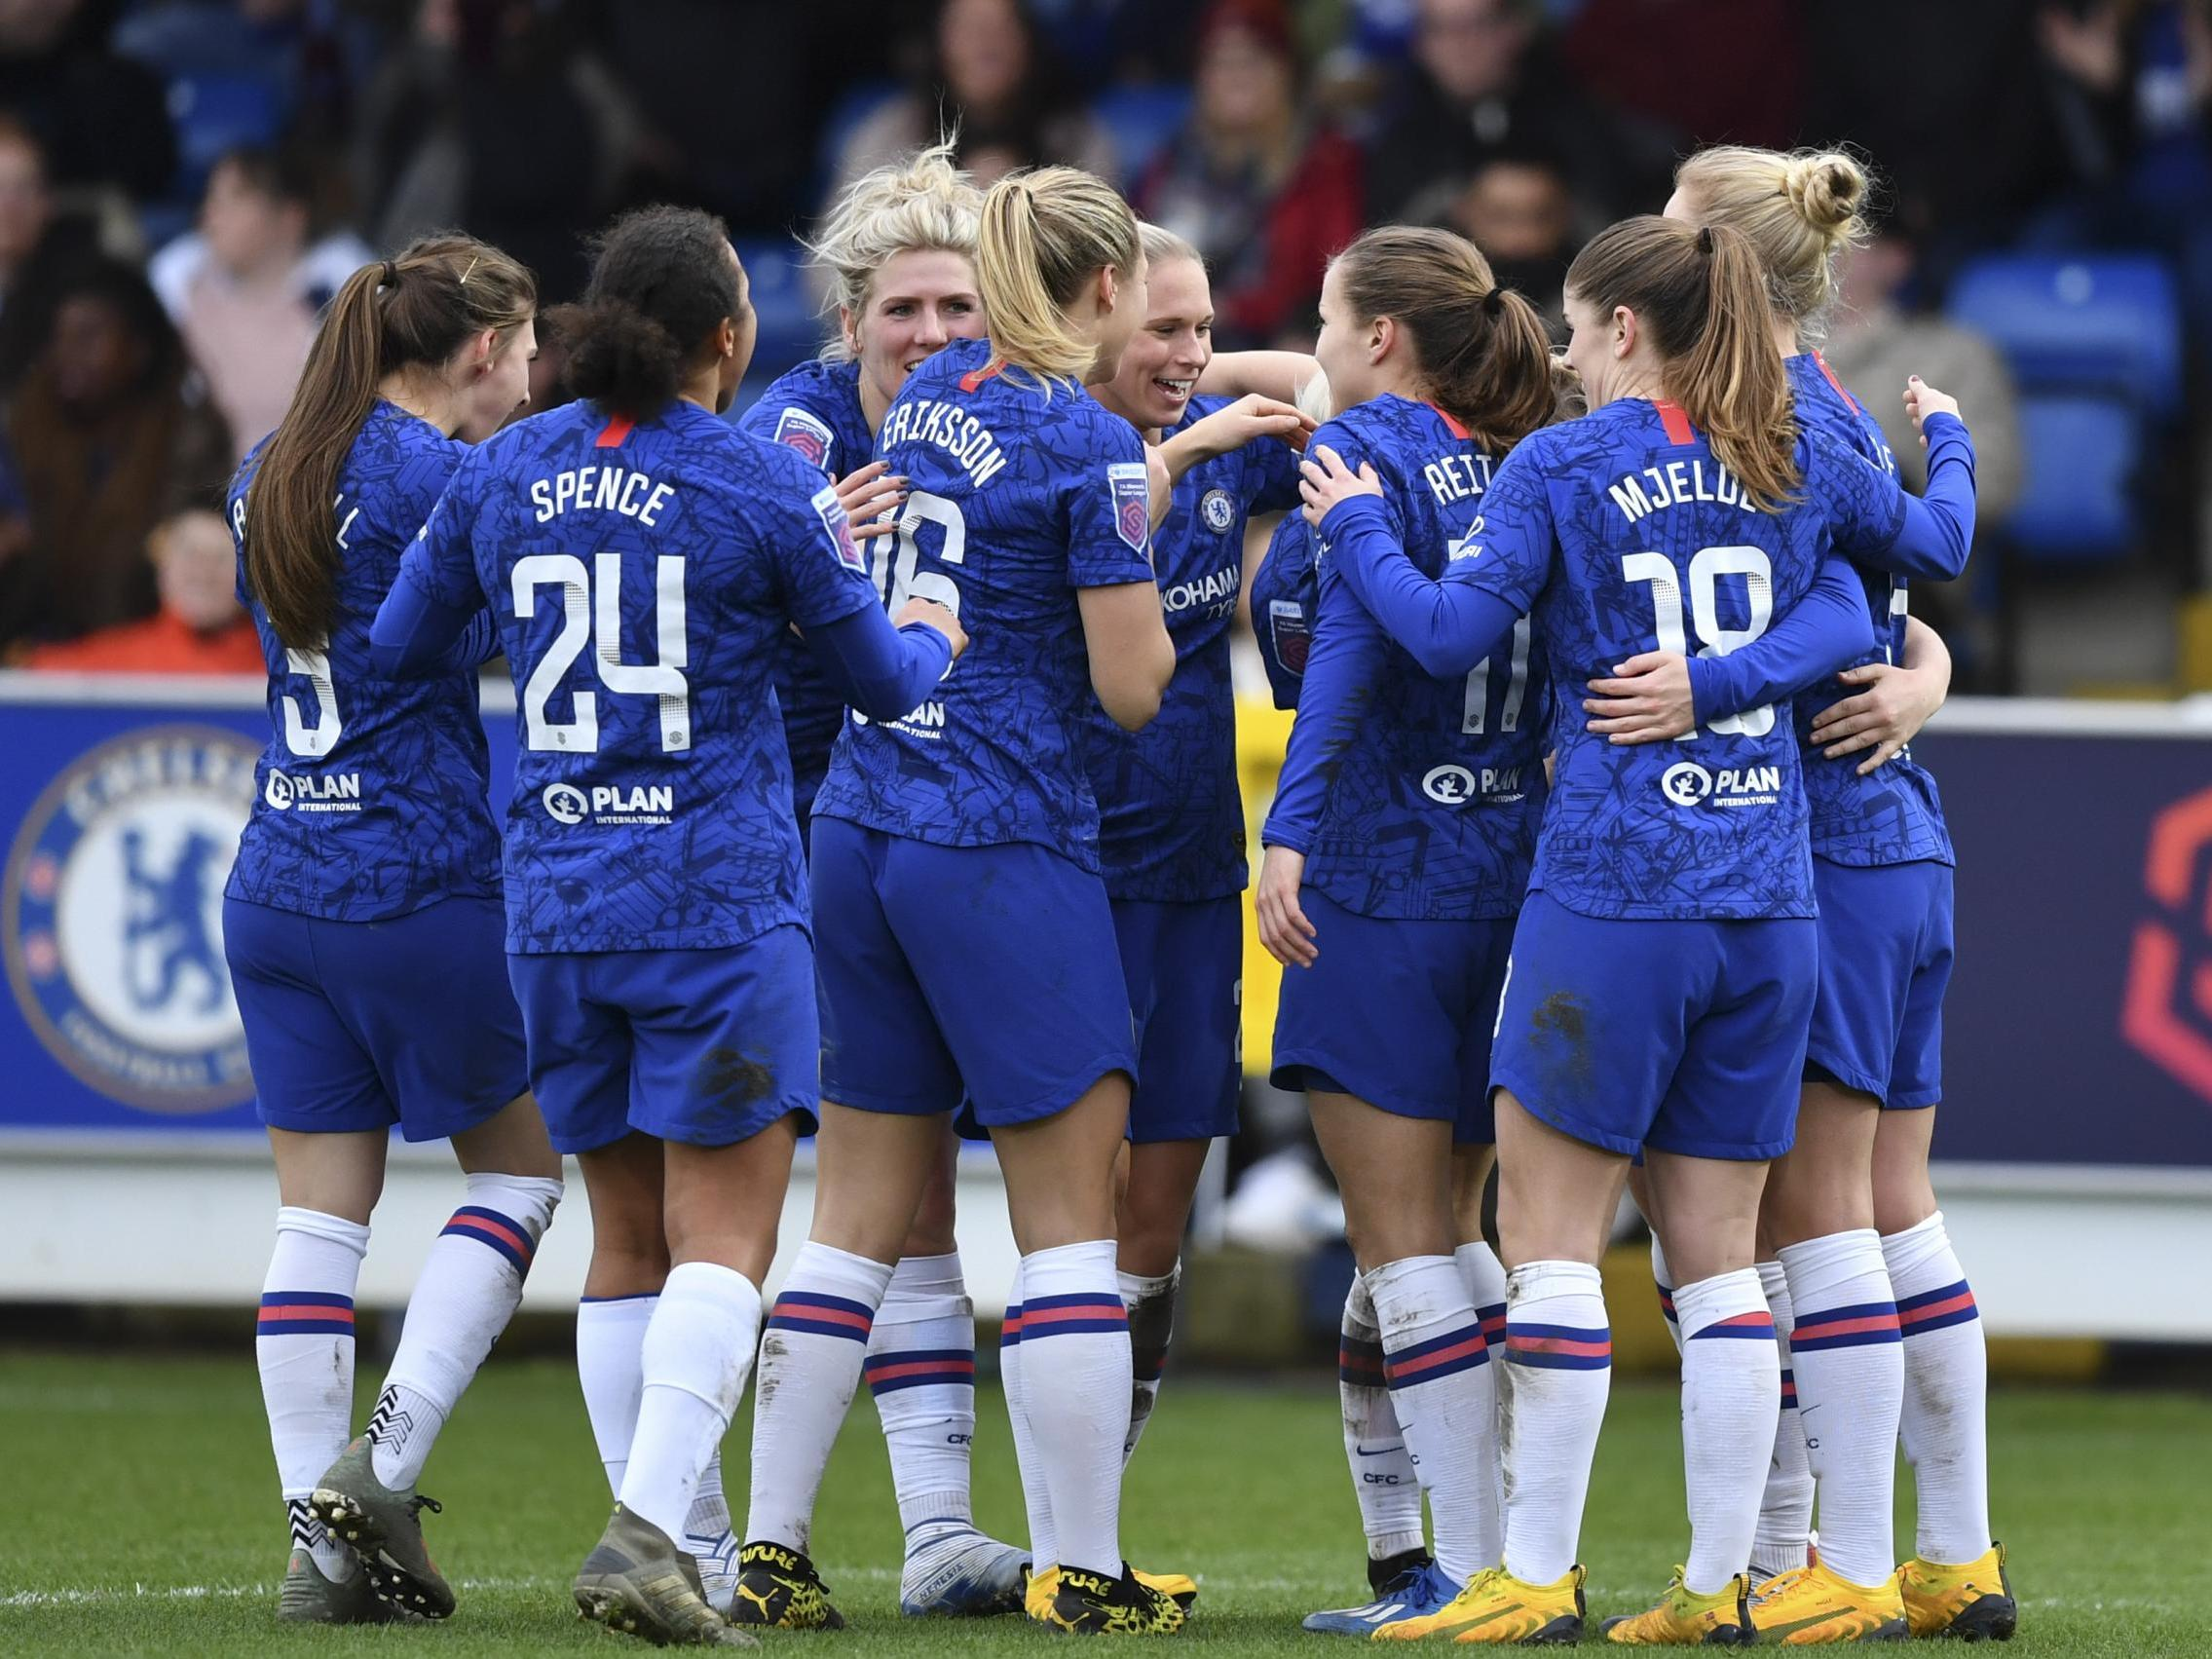 shutterstock editorial 10543415ac - Chelsea become first football club in the world to tailor training to players' menstrual cycle